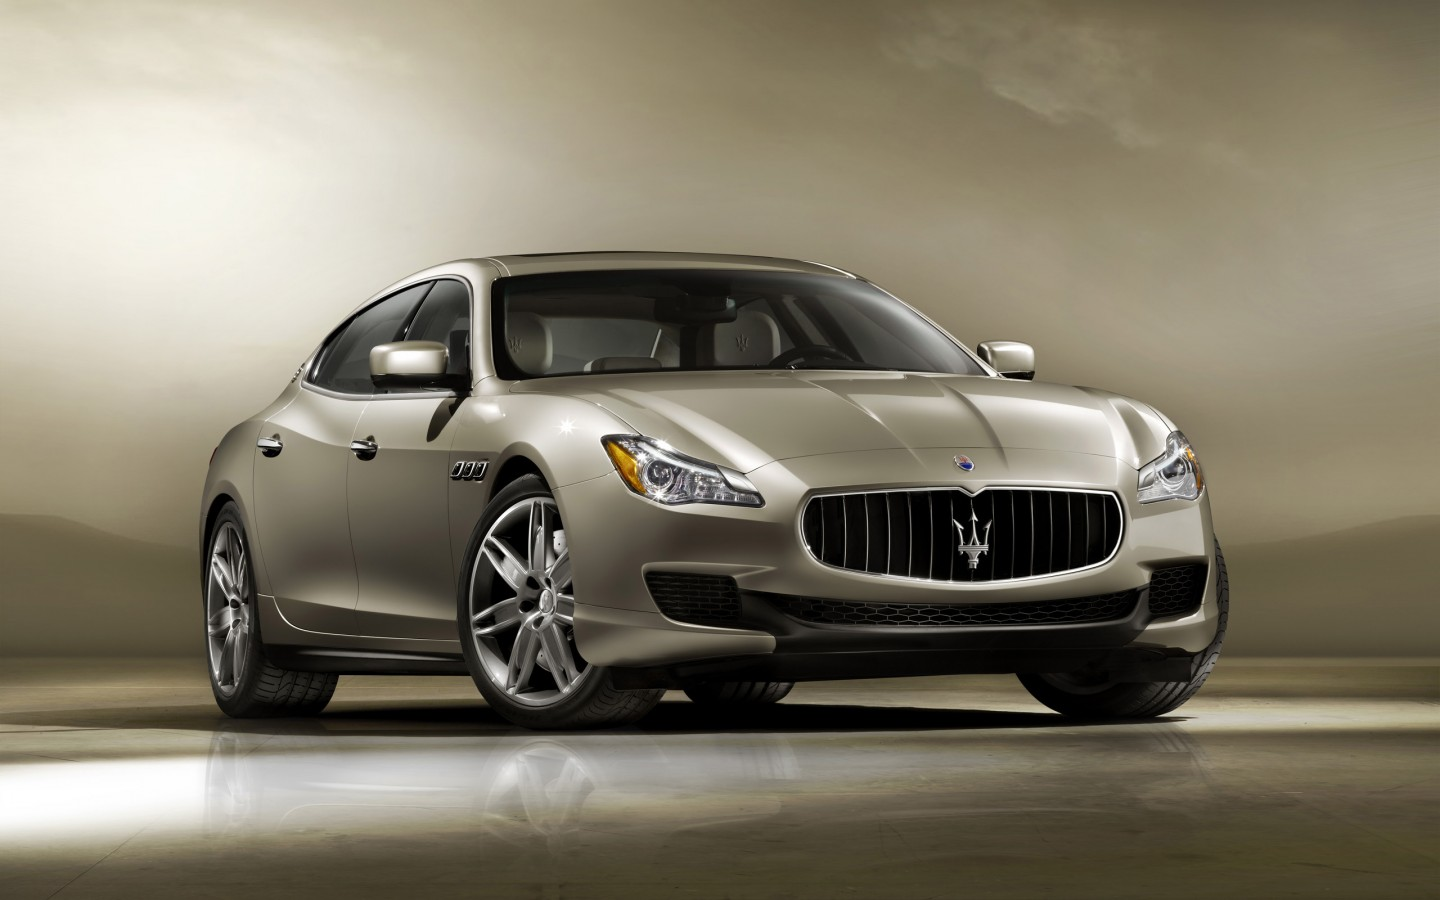 maserati ghibli 2014 wallpaper hd car wallpapers. Black Bedroom Furniture Sets. Home Design Ideas